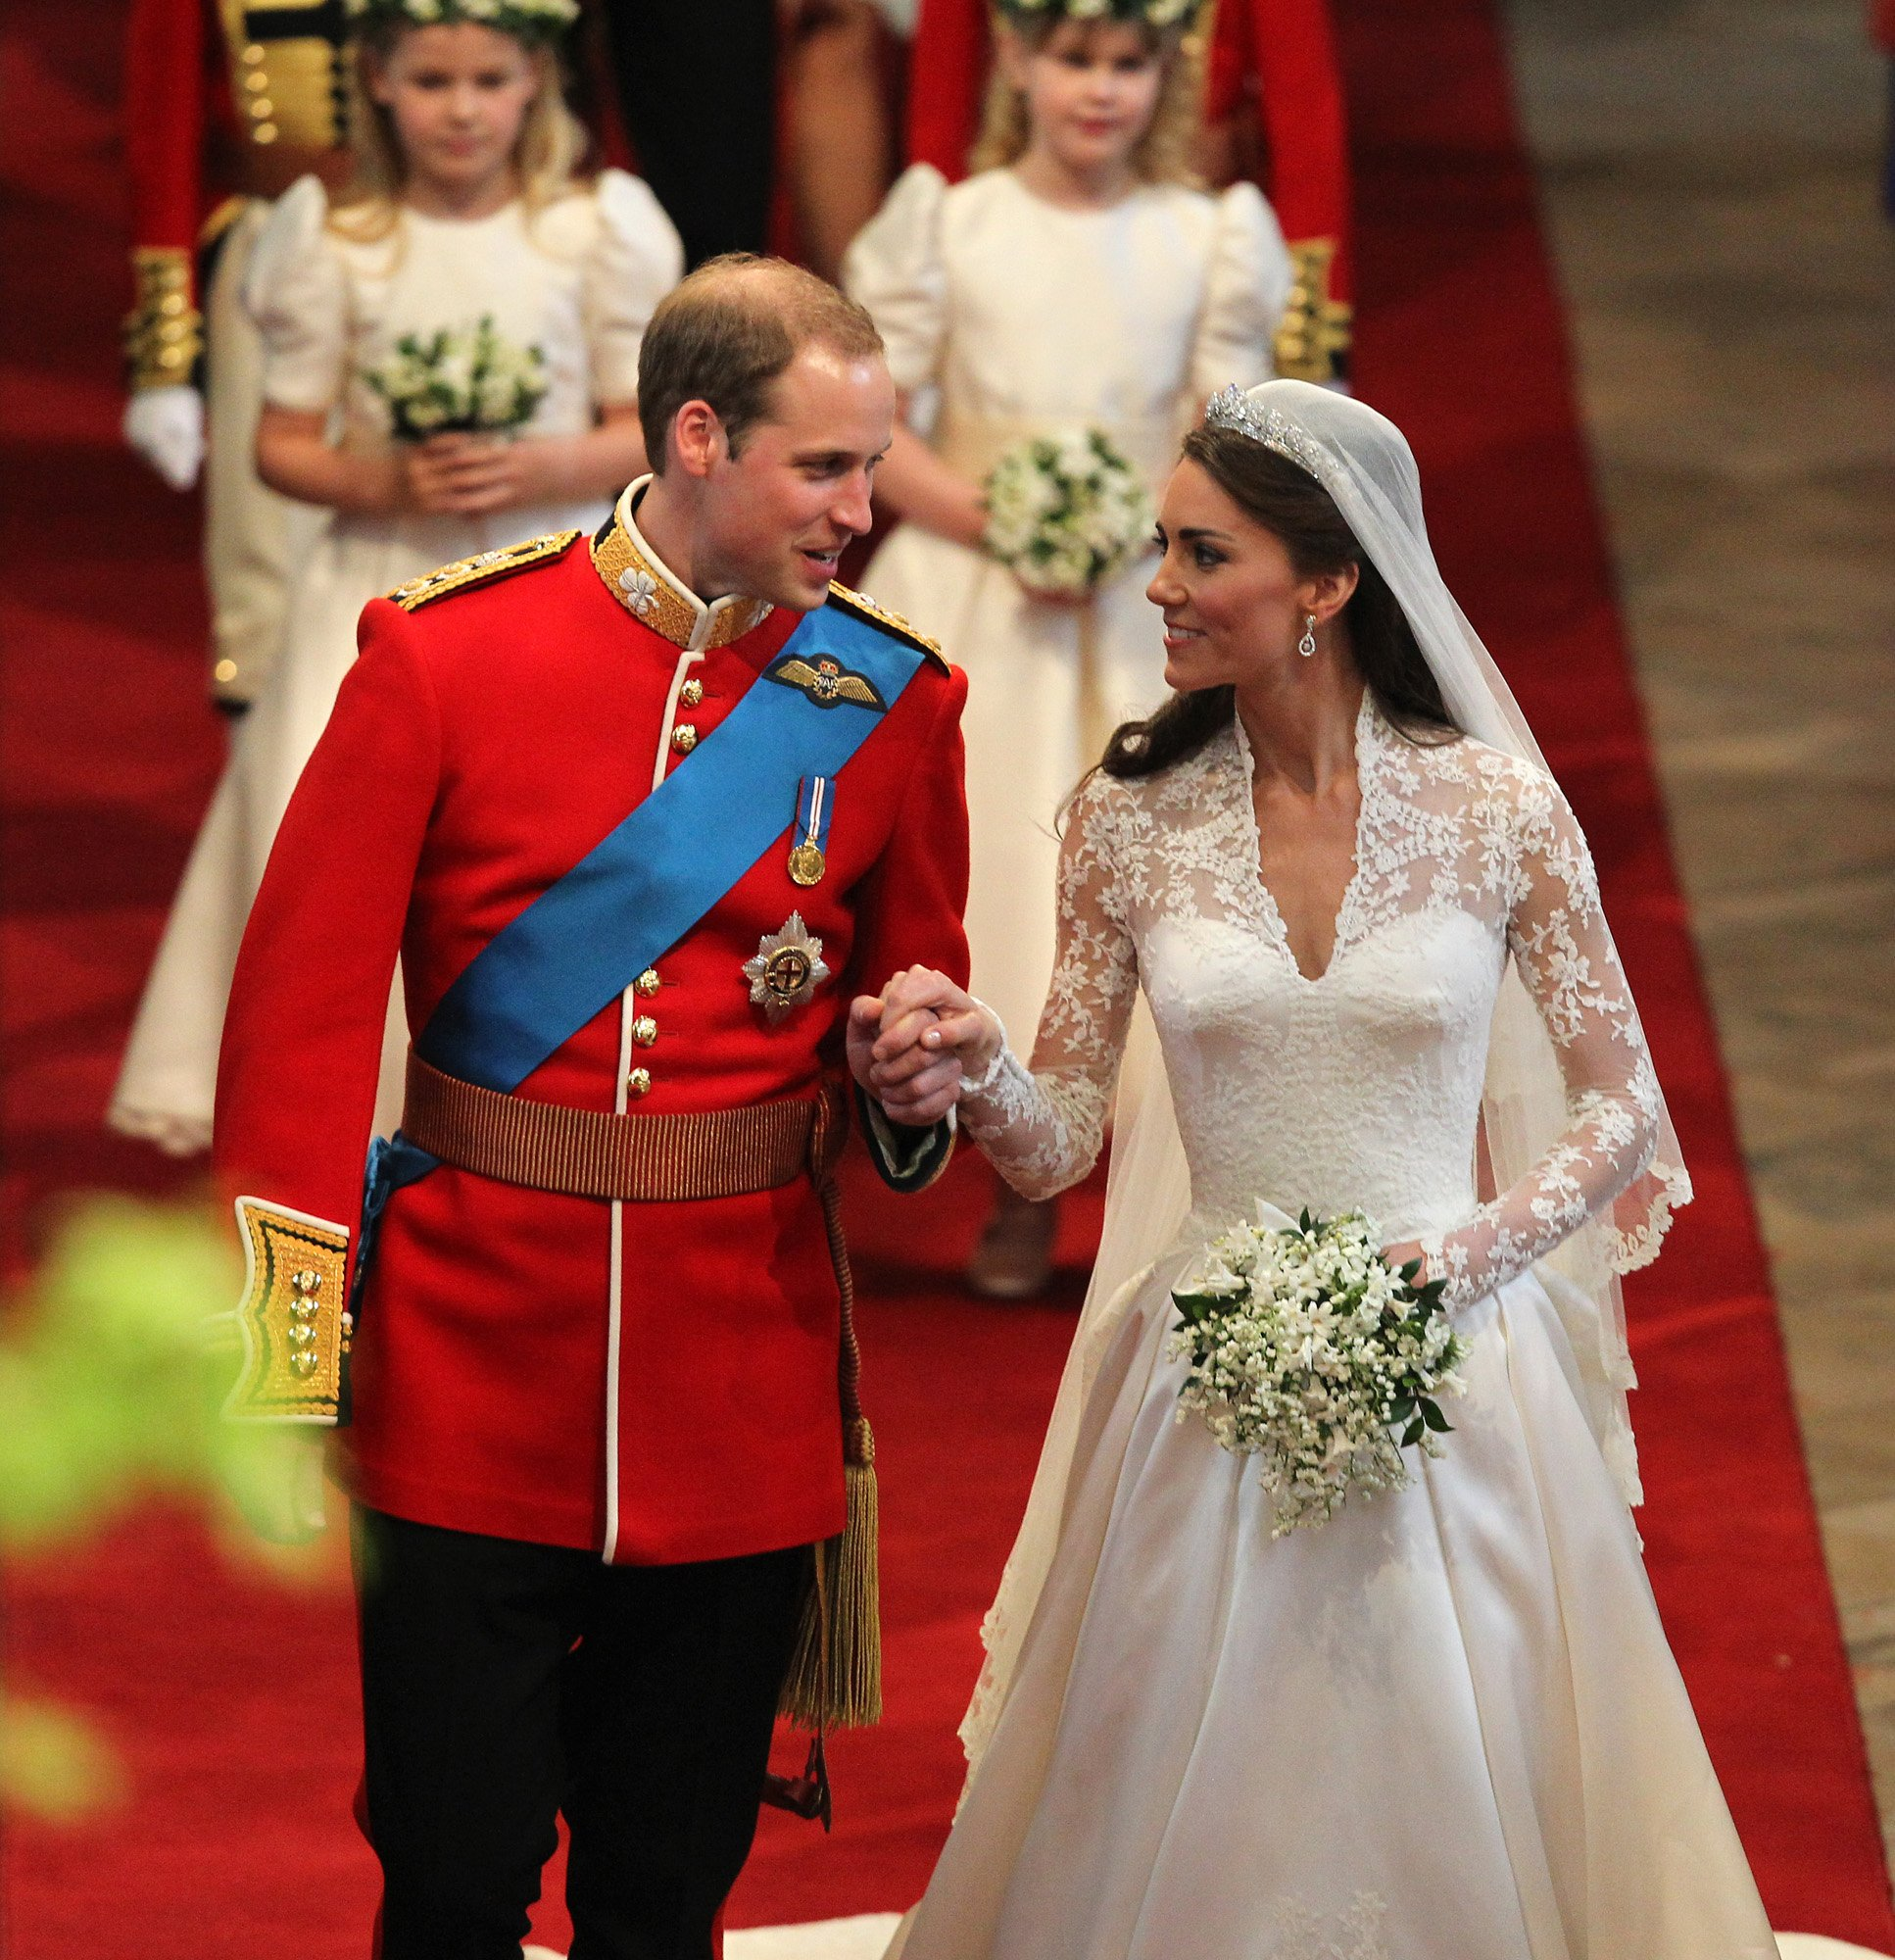 Image Credits: Getty Images | Kate Middleton's wedding